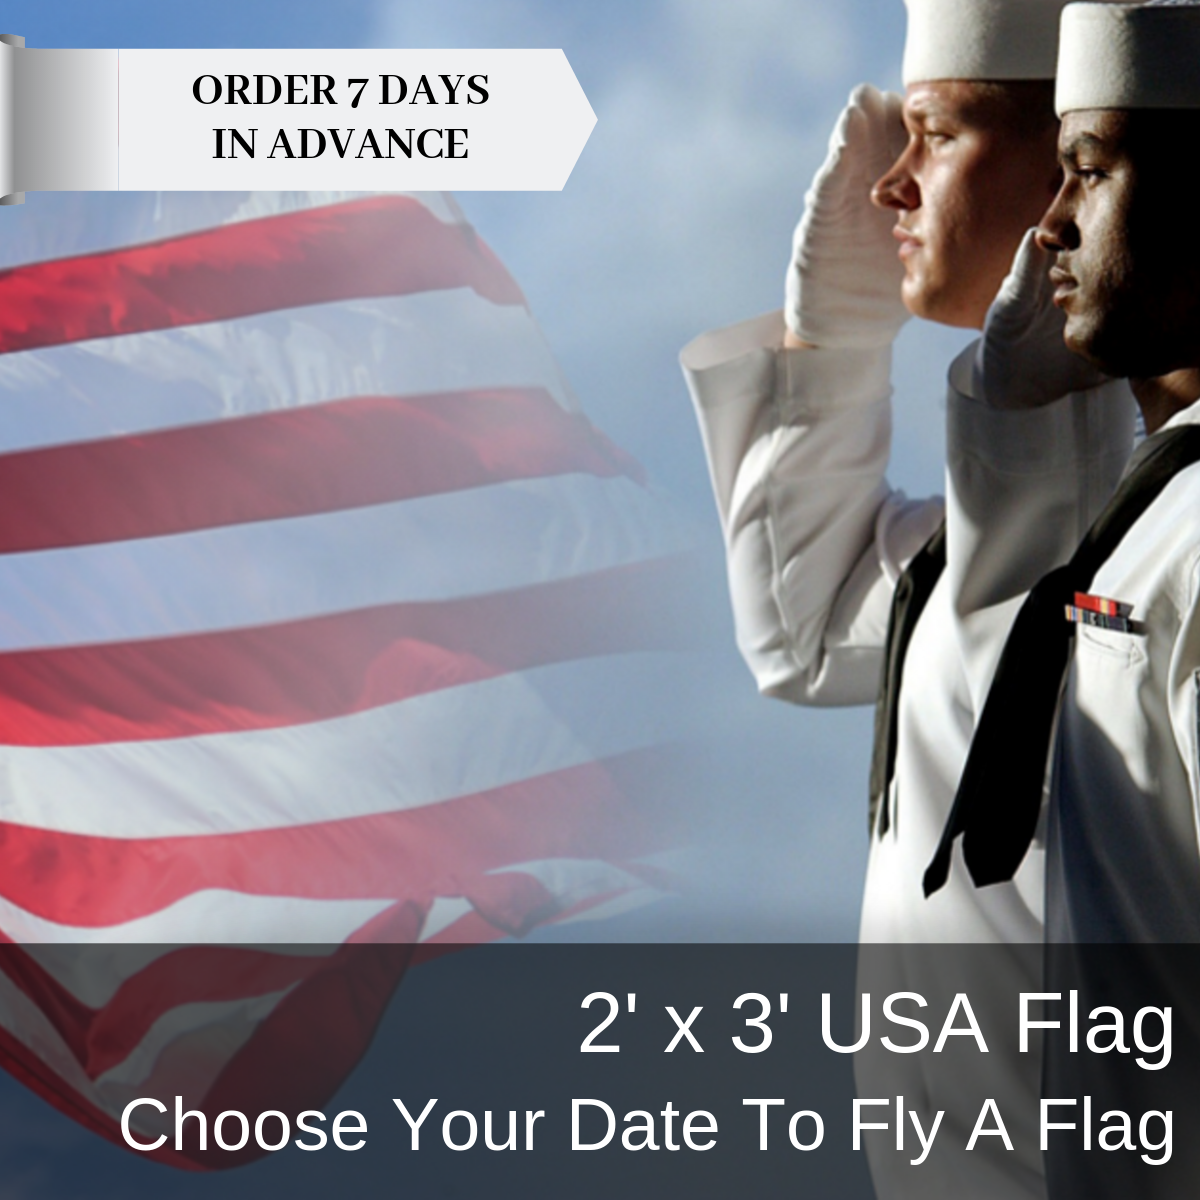 2x3 Choose Your Date USA Flag Flown On USS Arizona Memorial At Pearl Harbor